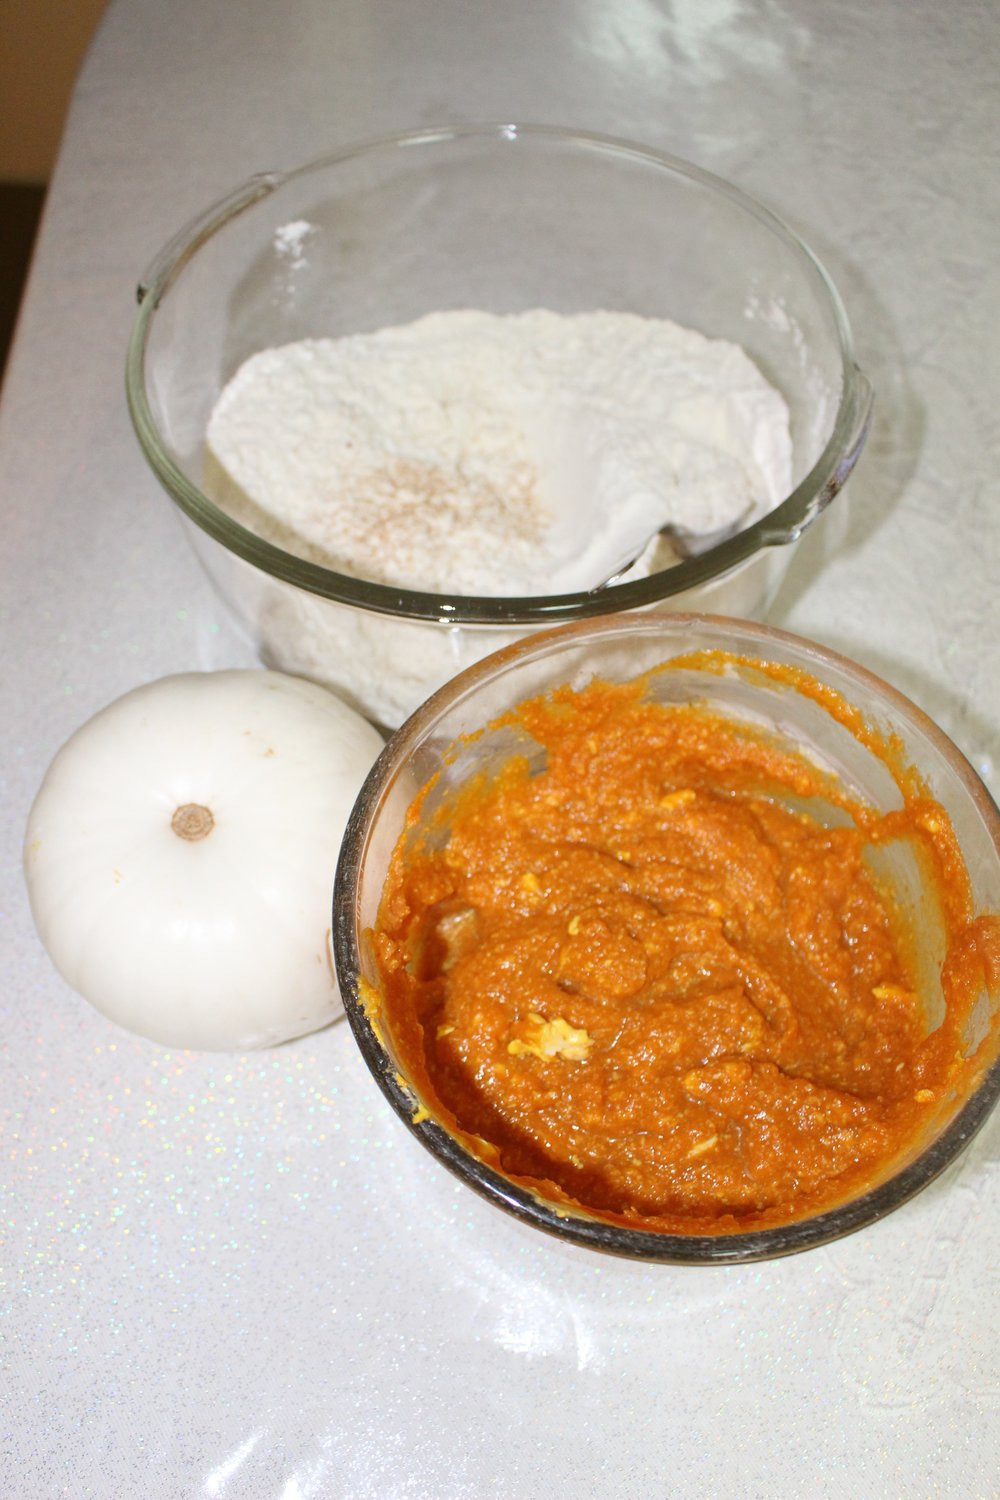 Ready to mix the wet ingredients with the dry ingredients